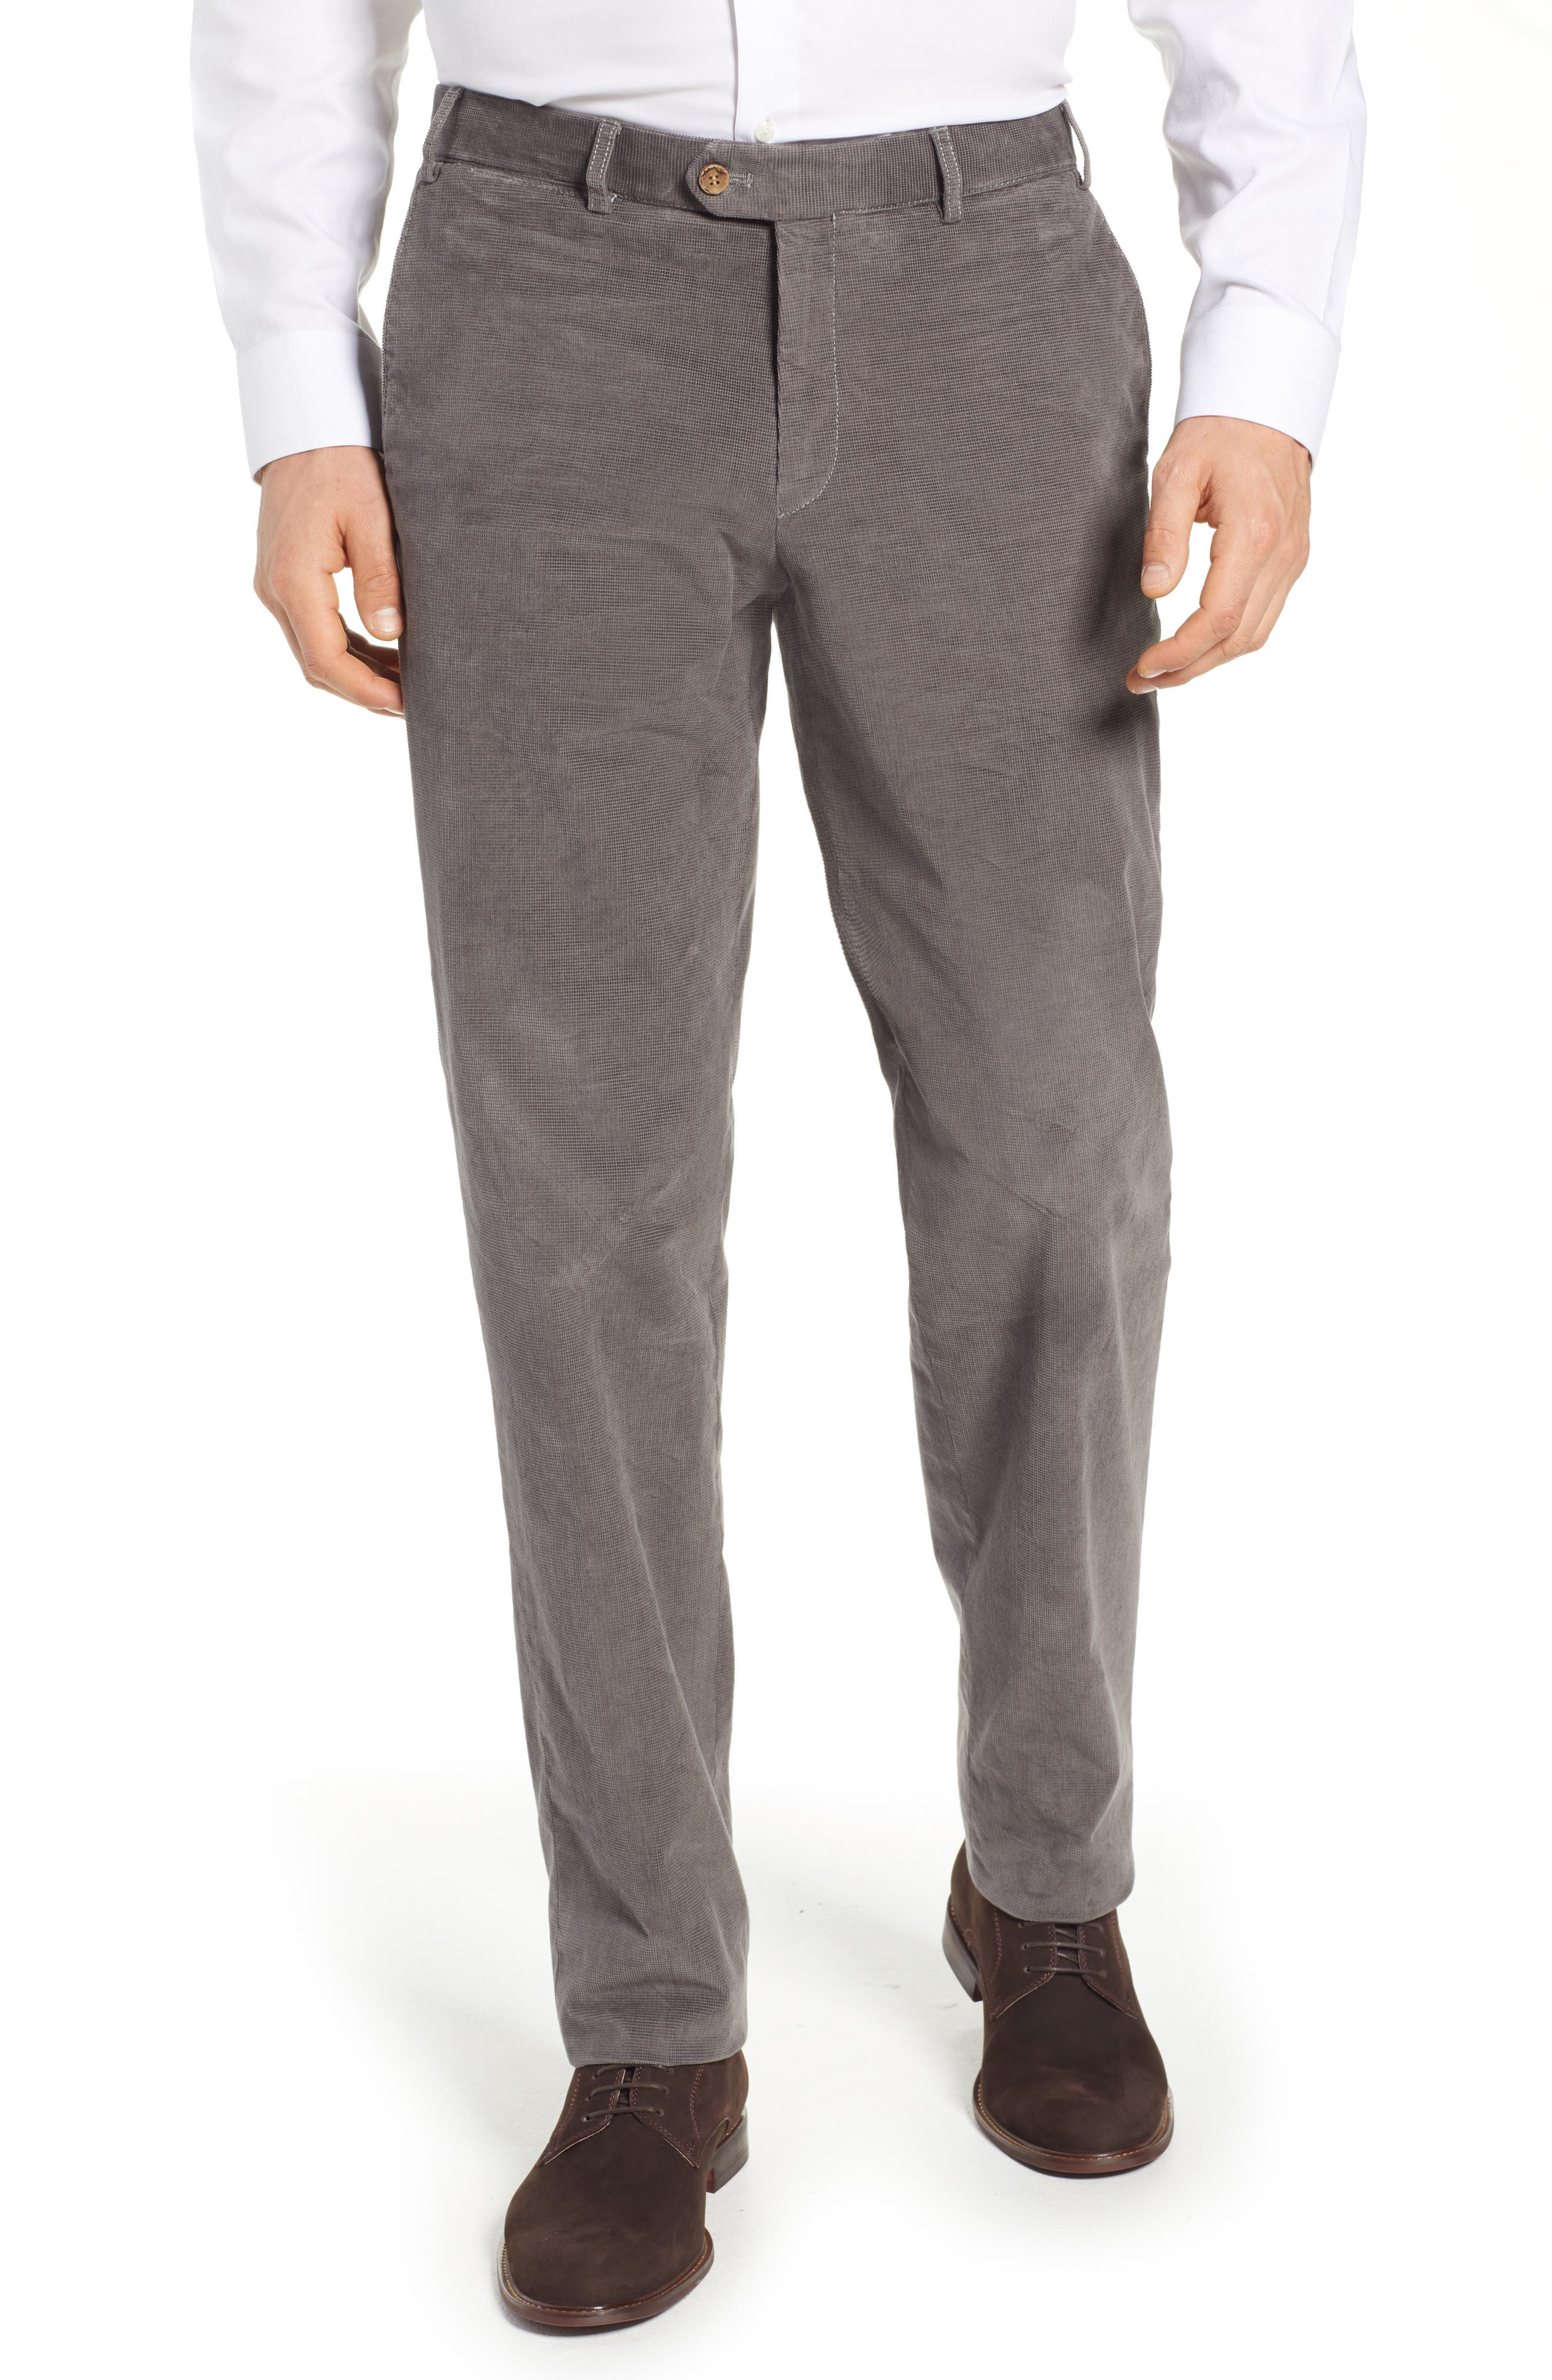 Pero Trim Fit Stretch Flat Front Trousers,                             Main thumbnail 1, color,                             TAUPE